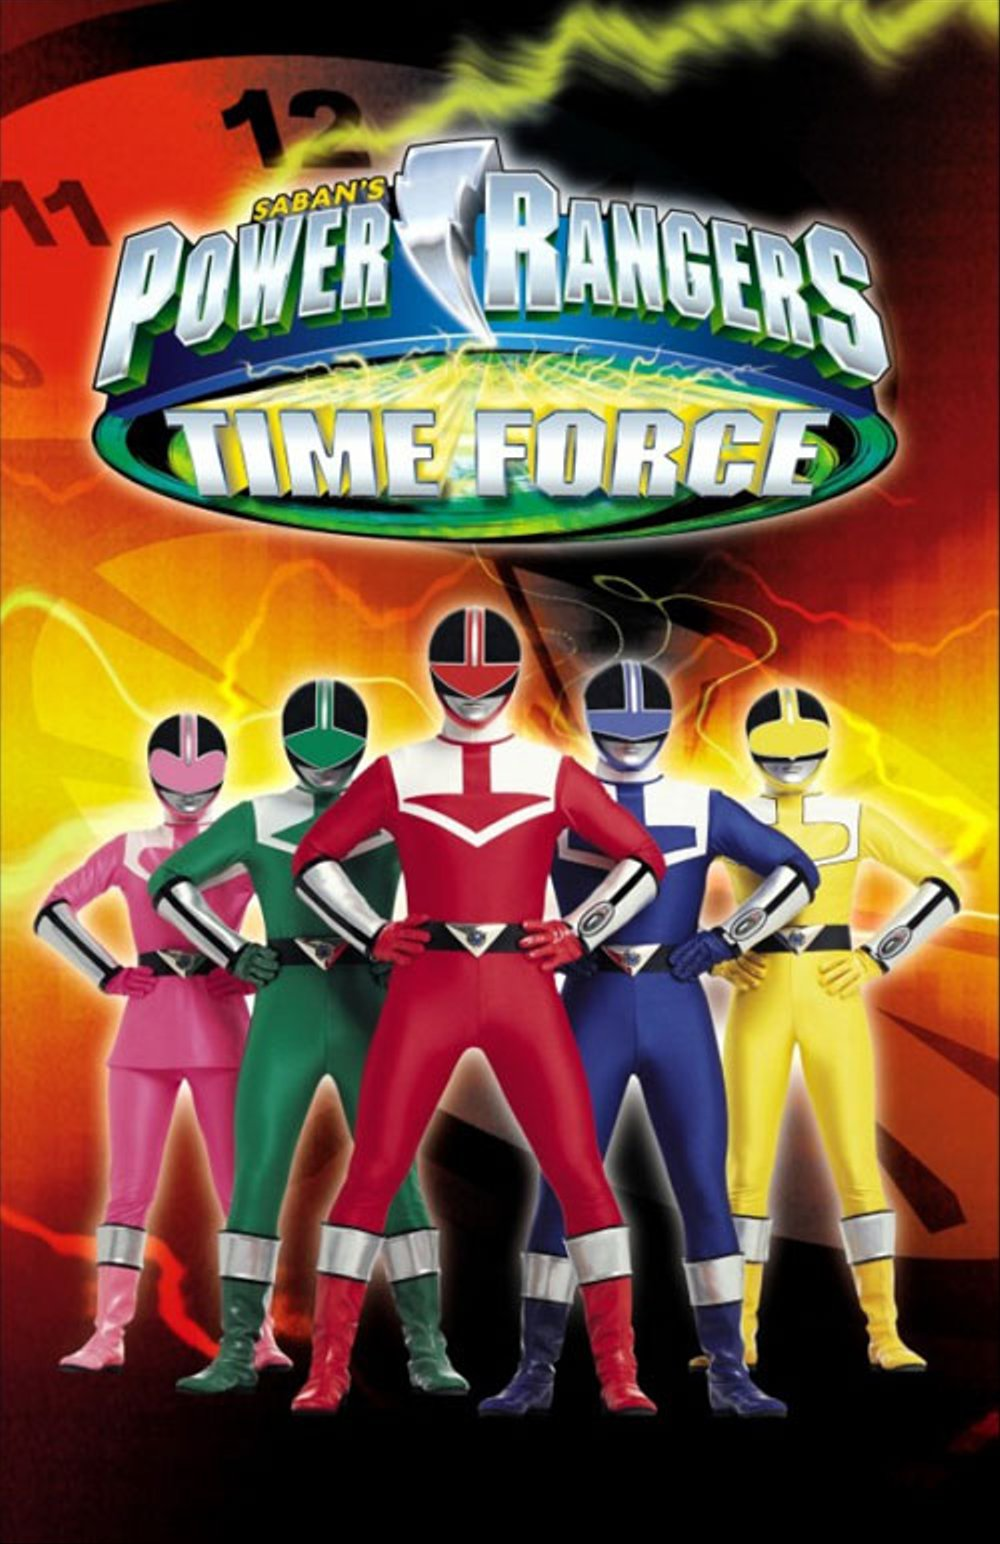 Rangers Time Force Song